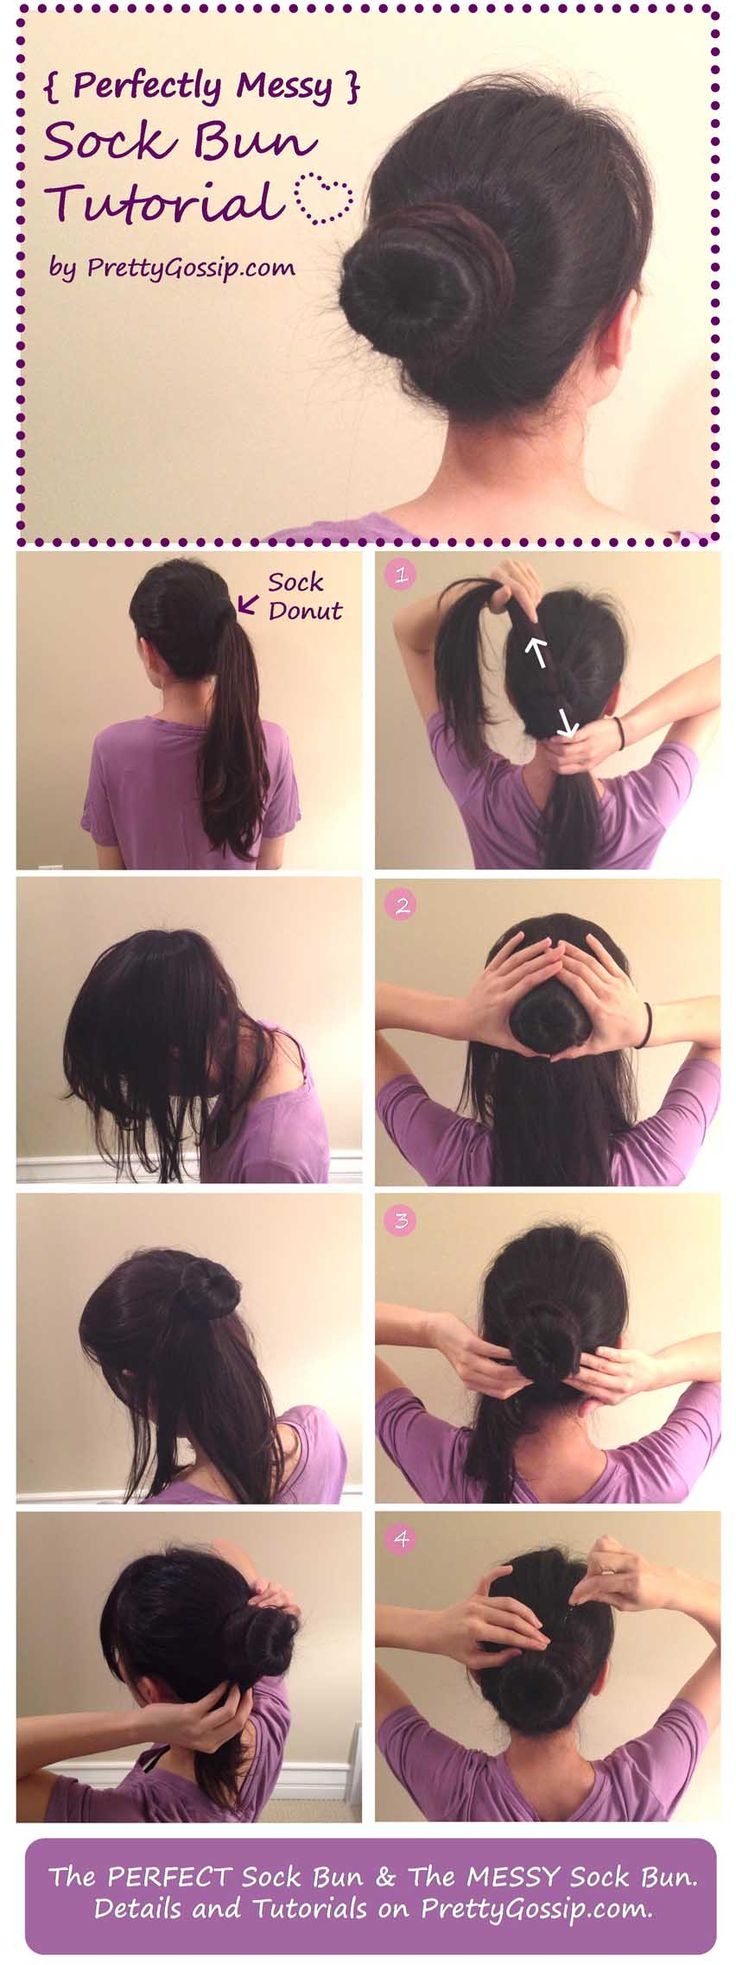 Ever since I cut my hair into layers, I haven't been able to do the sock bun. But NOW, I JUST did. Thanks so this here tutorial.